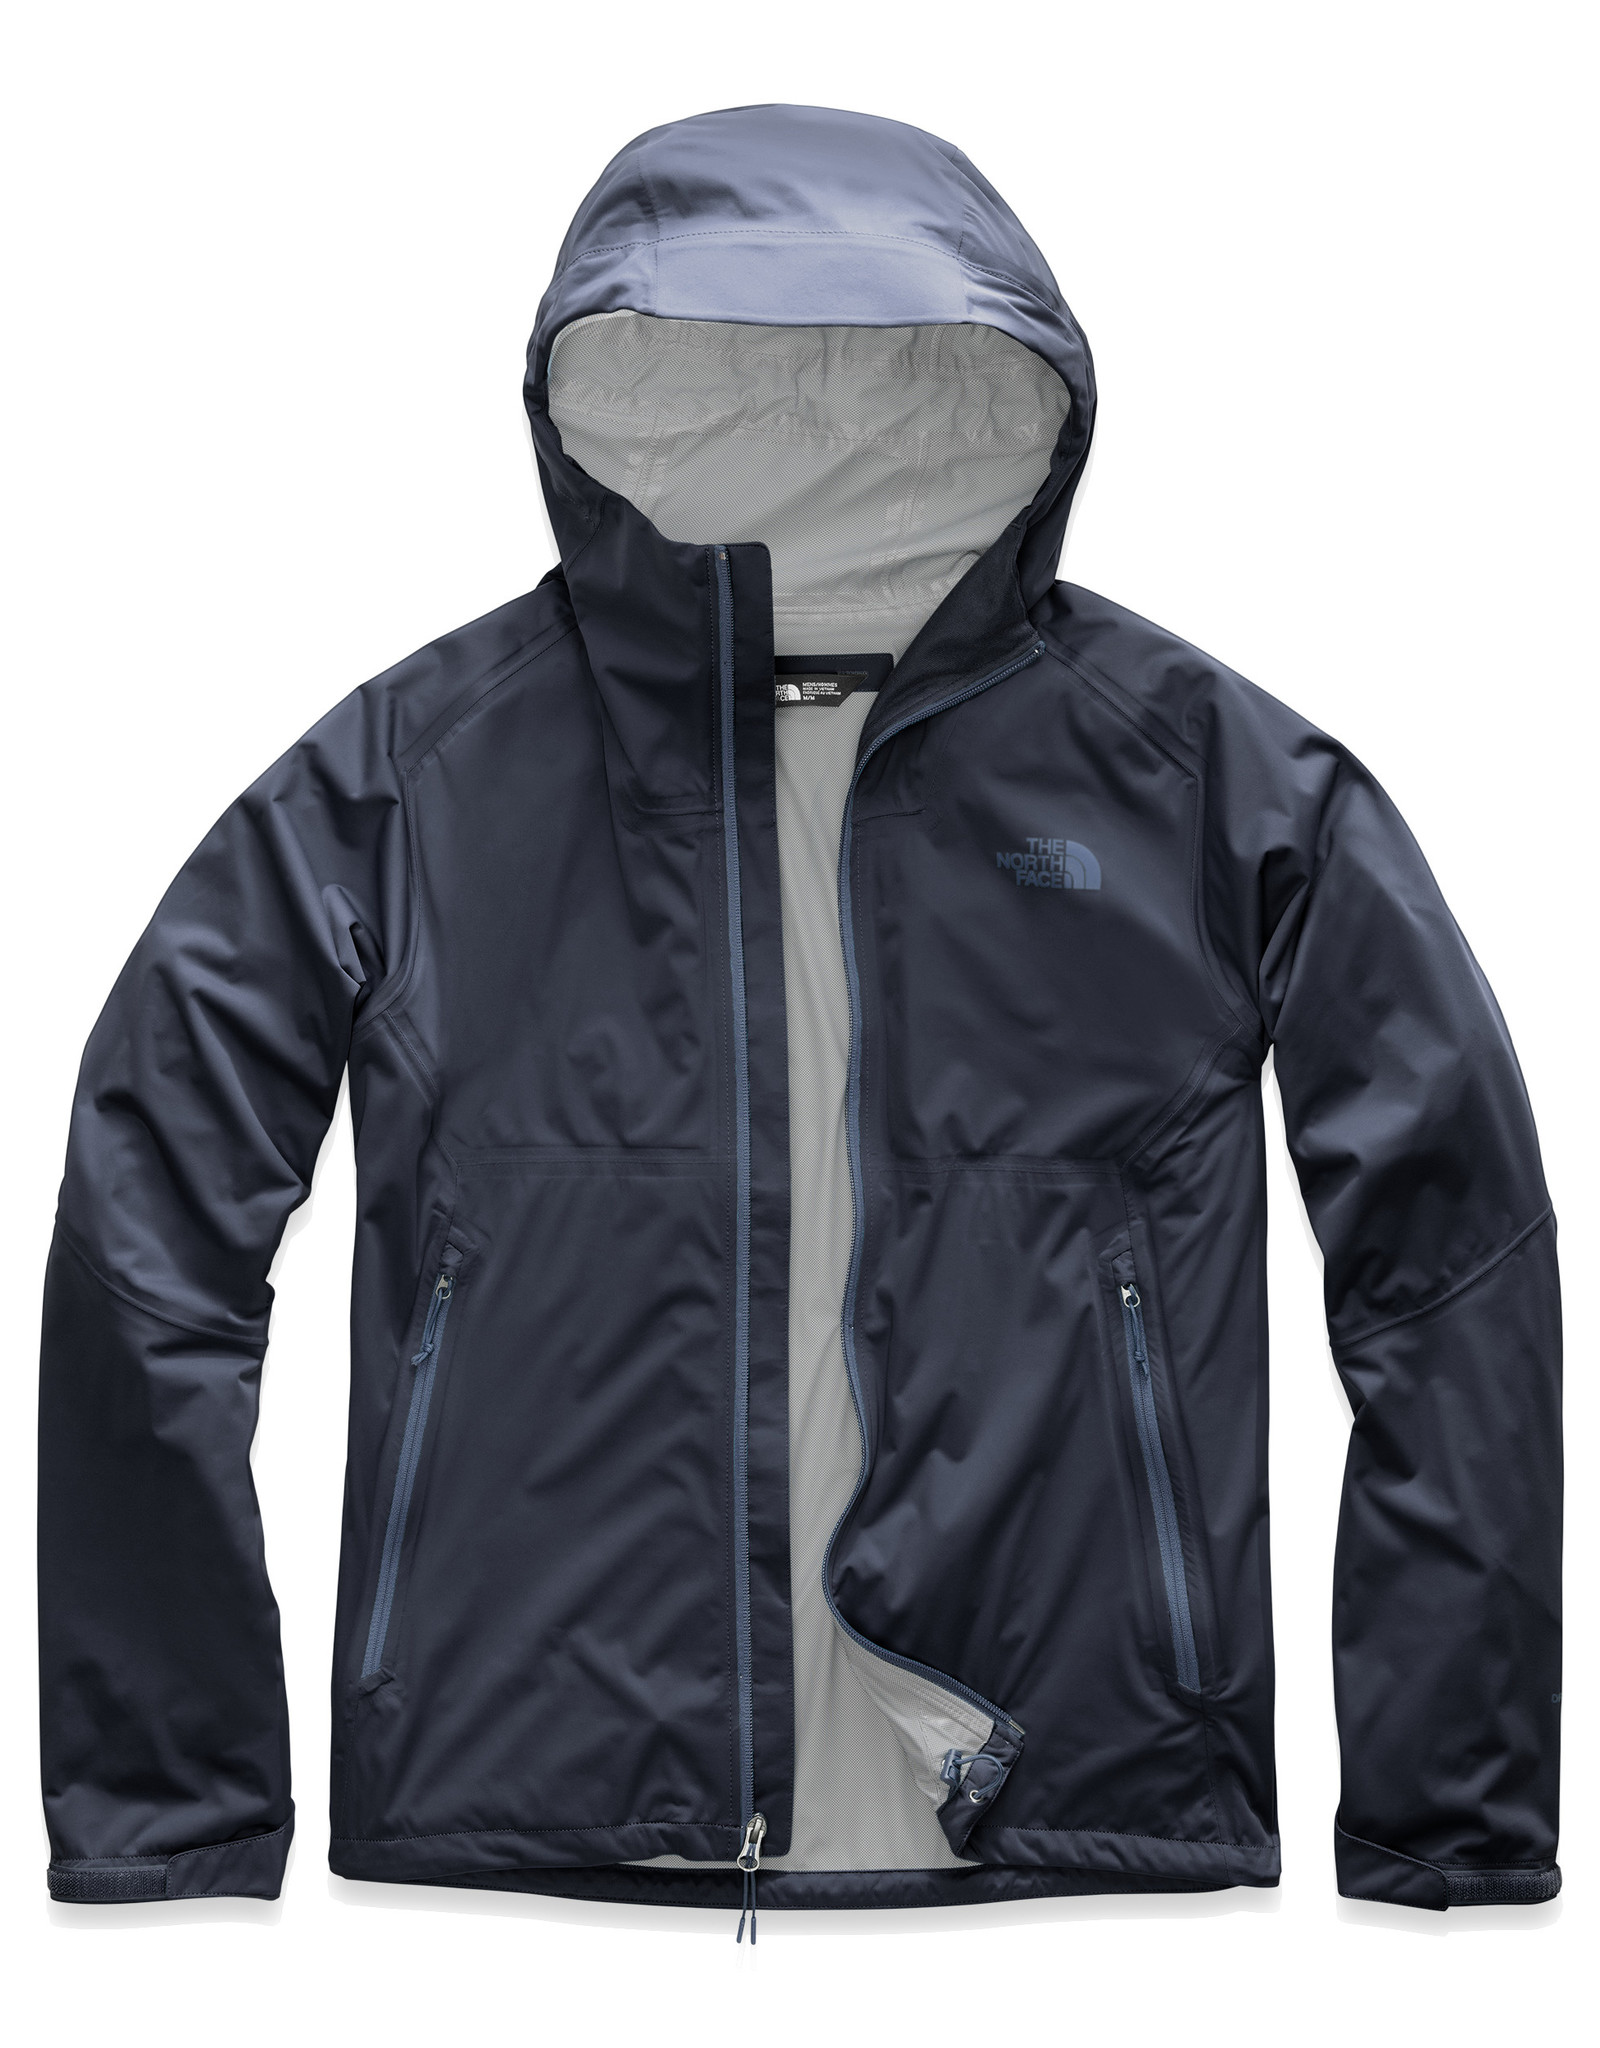 The North Face The North Face Men's Allproof Stretch Jacket - S2019